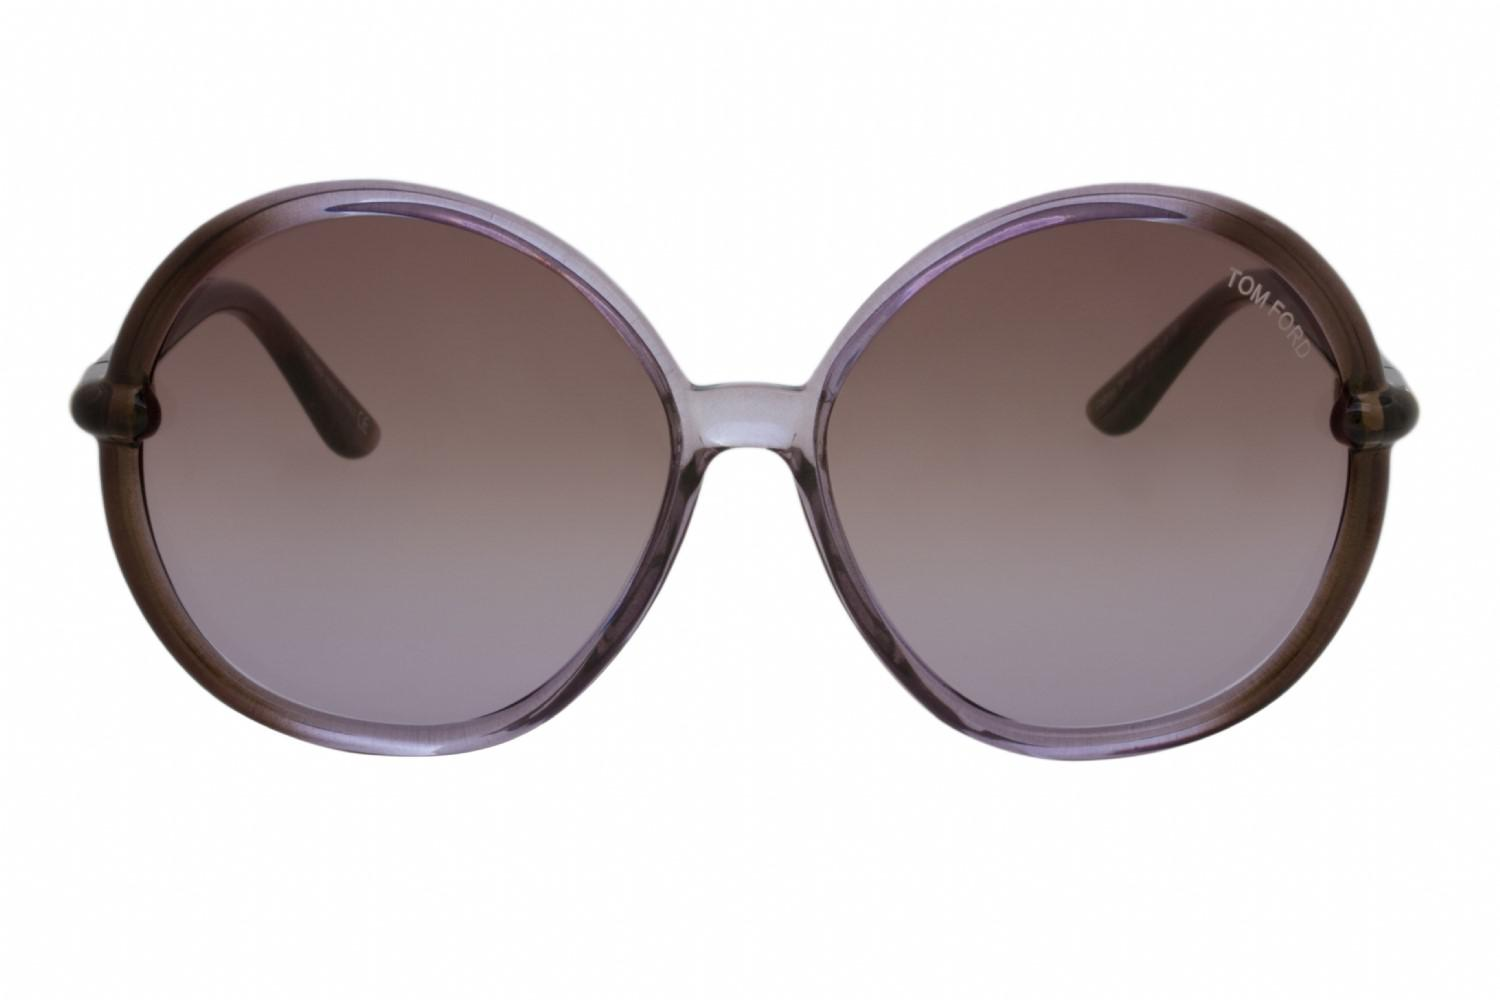 889e0f70c28fe Tom Ford Ft0167 Caithlyn Sunglasses Lilac Shaded   Dark Brown in ...